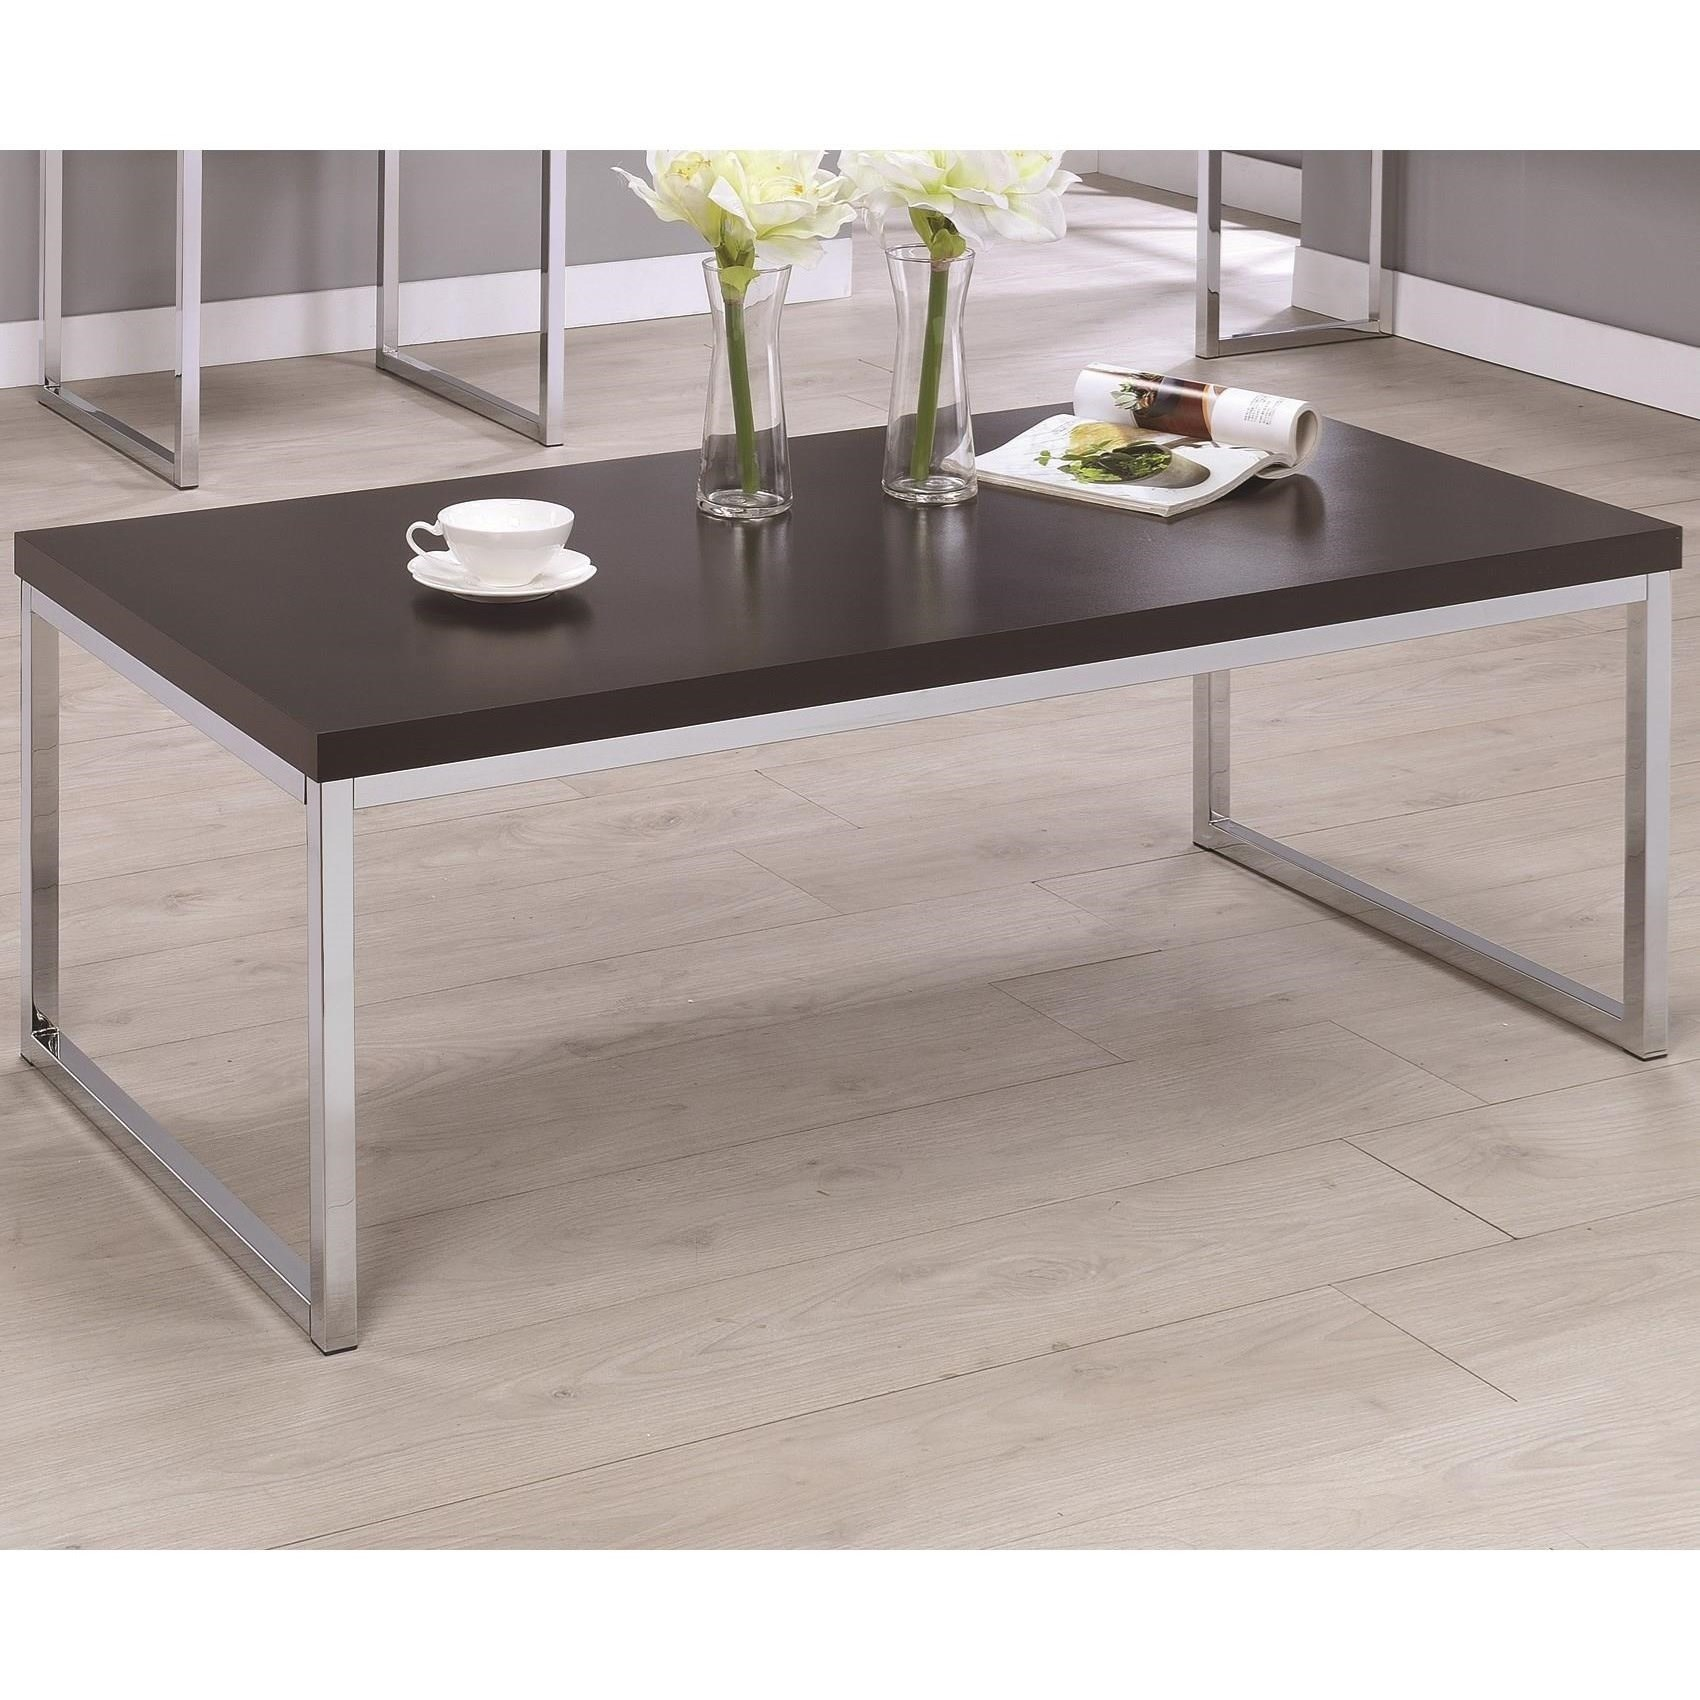 Coaster 72102 Coffee Table - Item Number: 721028